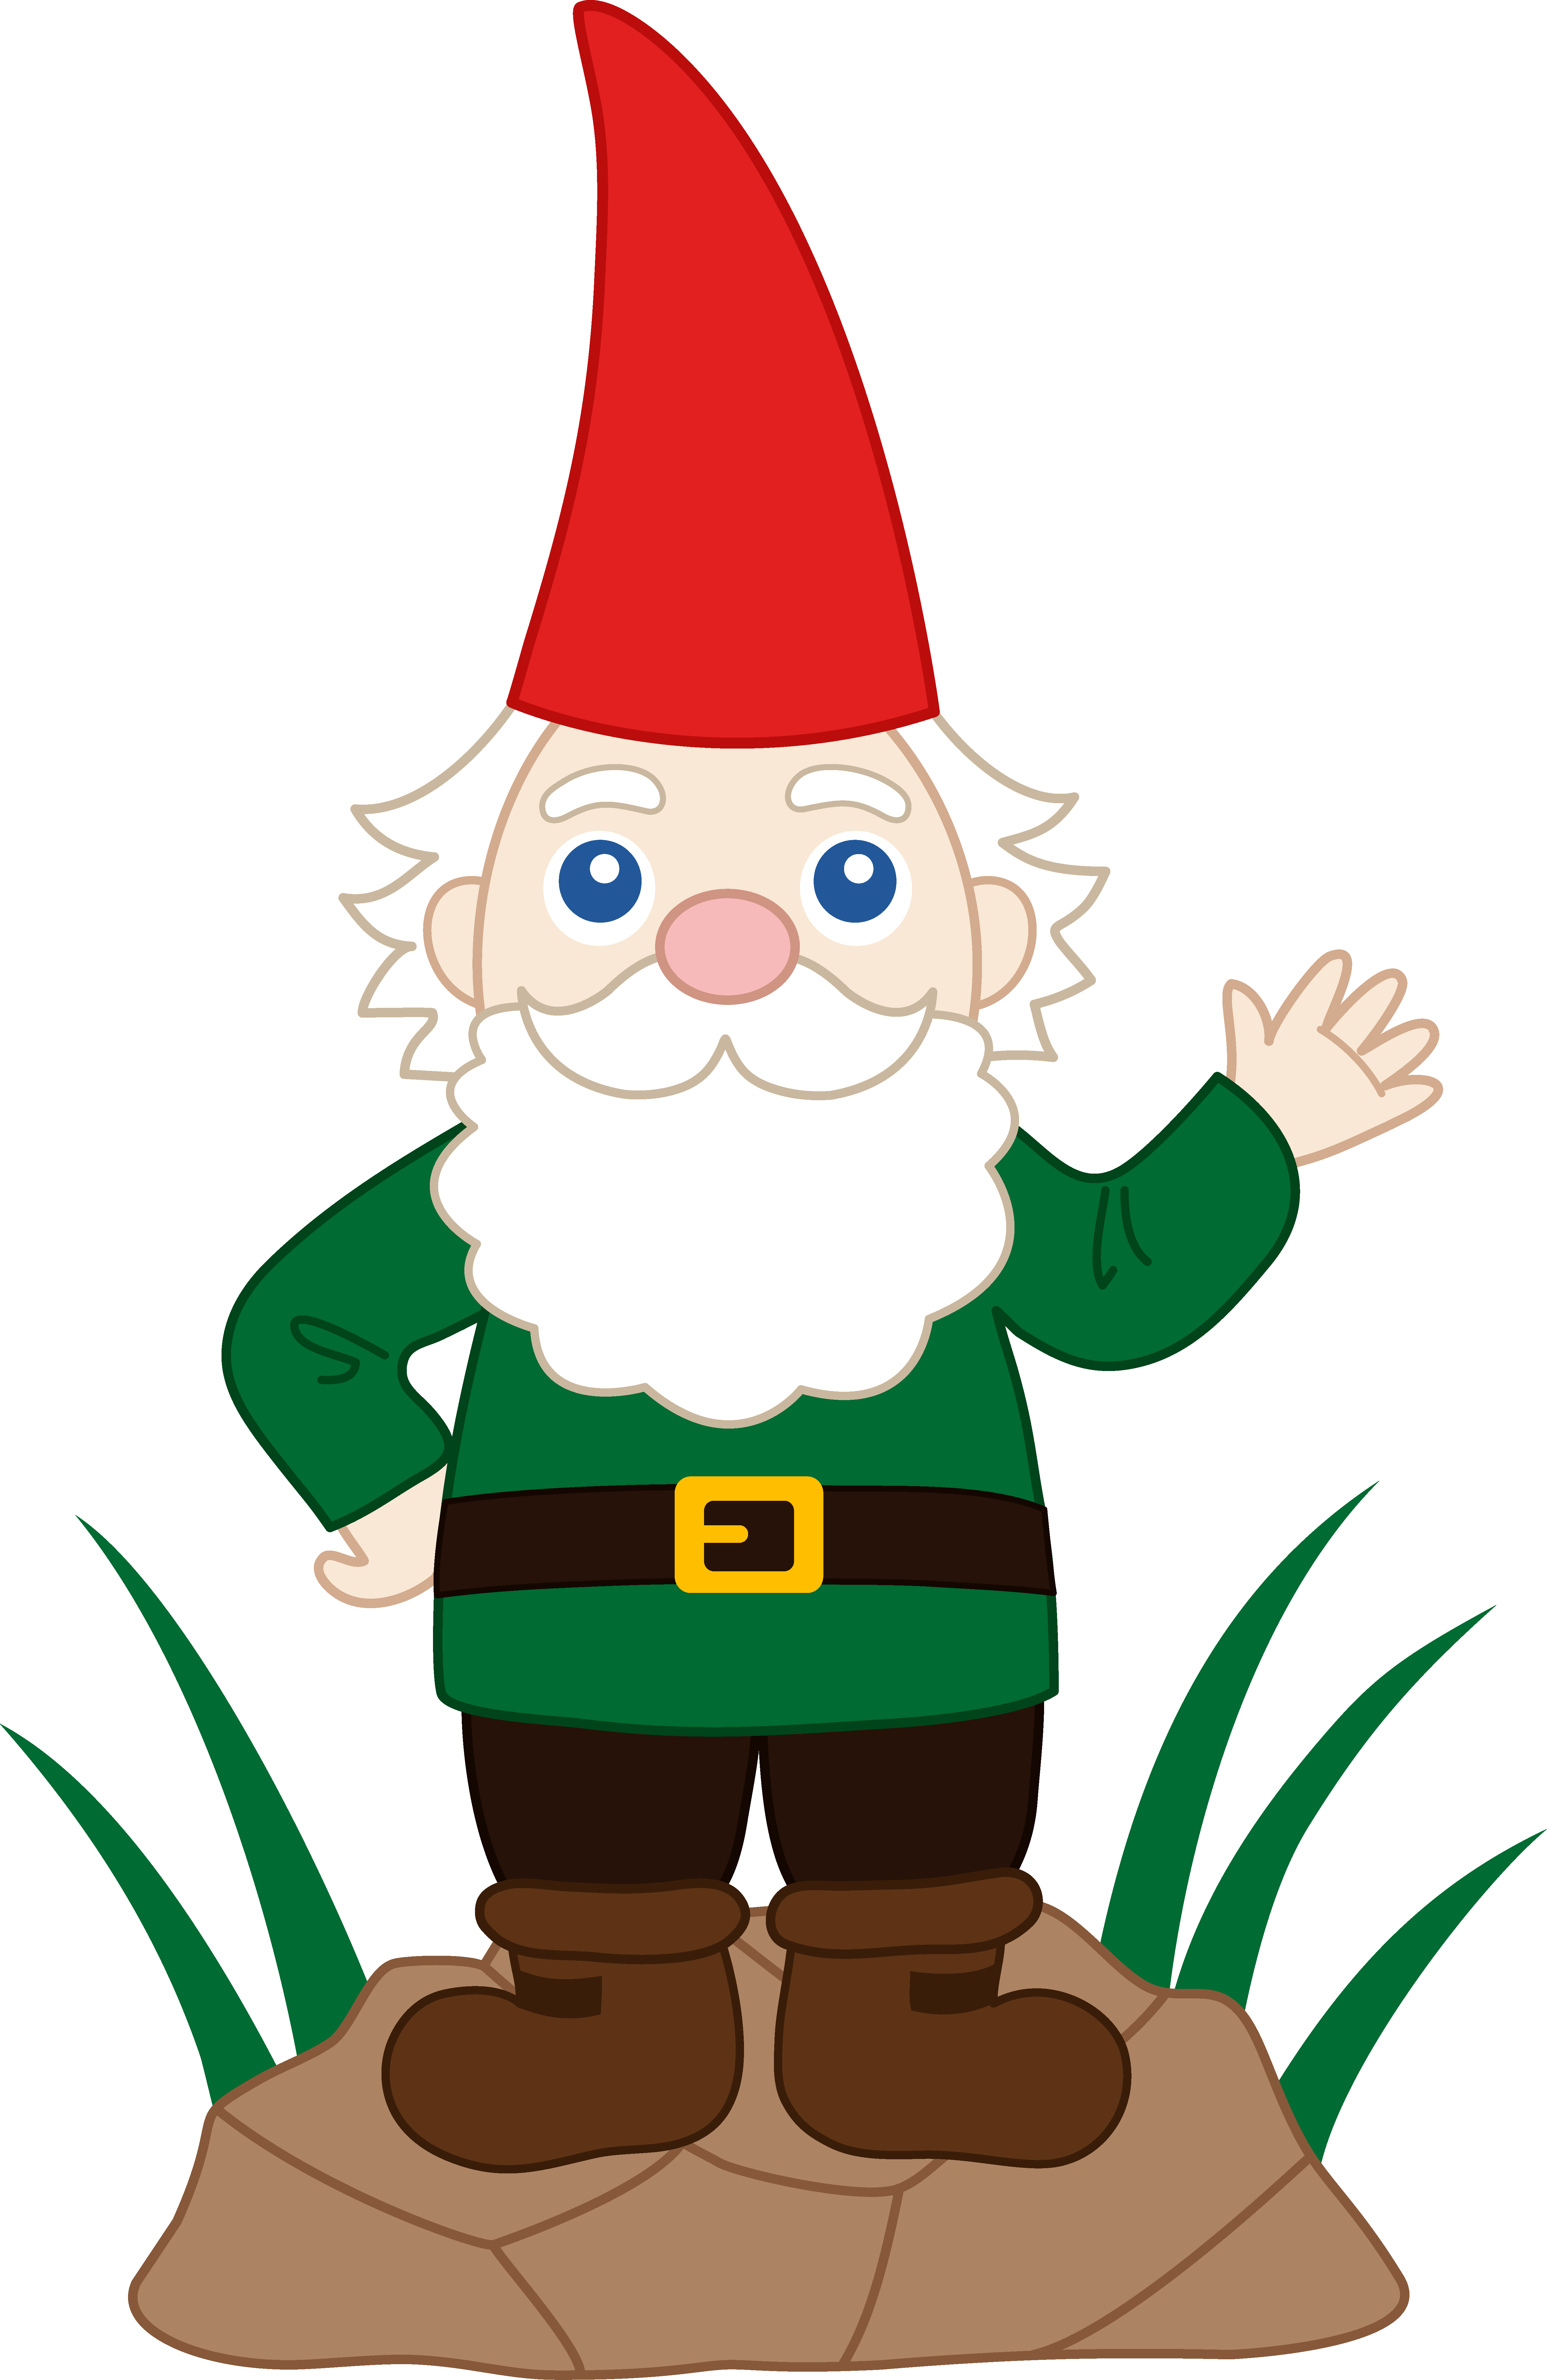 Friendly Garden Gnome   Free Clip Art - Gnome, Transparent background PNG HD thumbnail